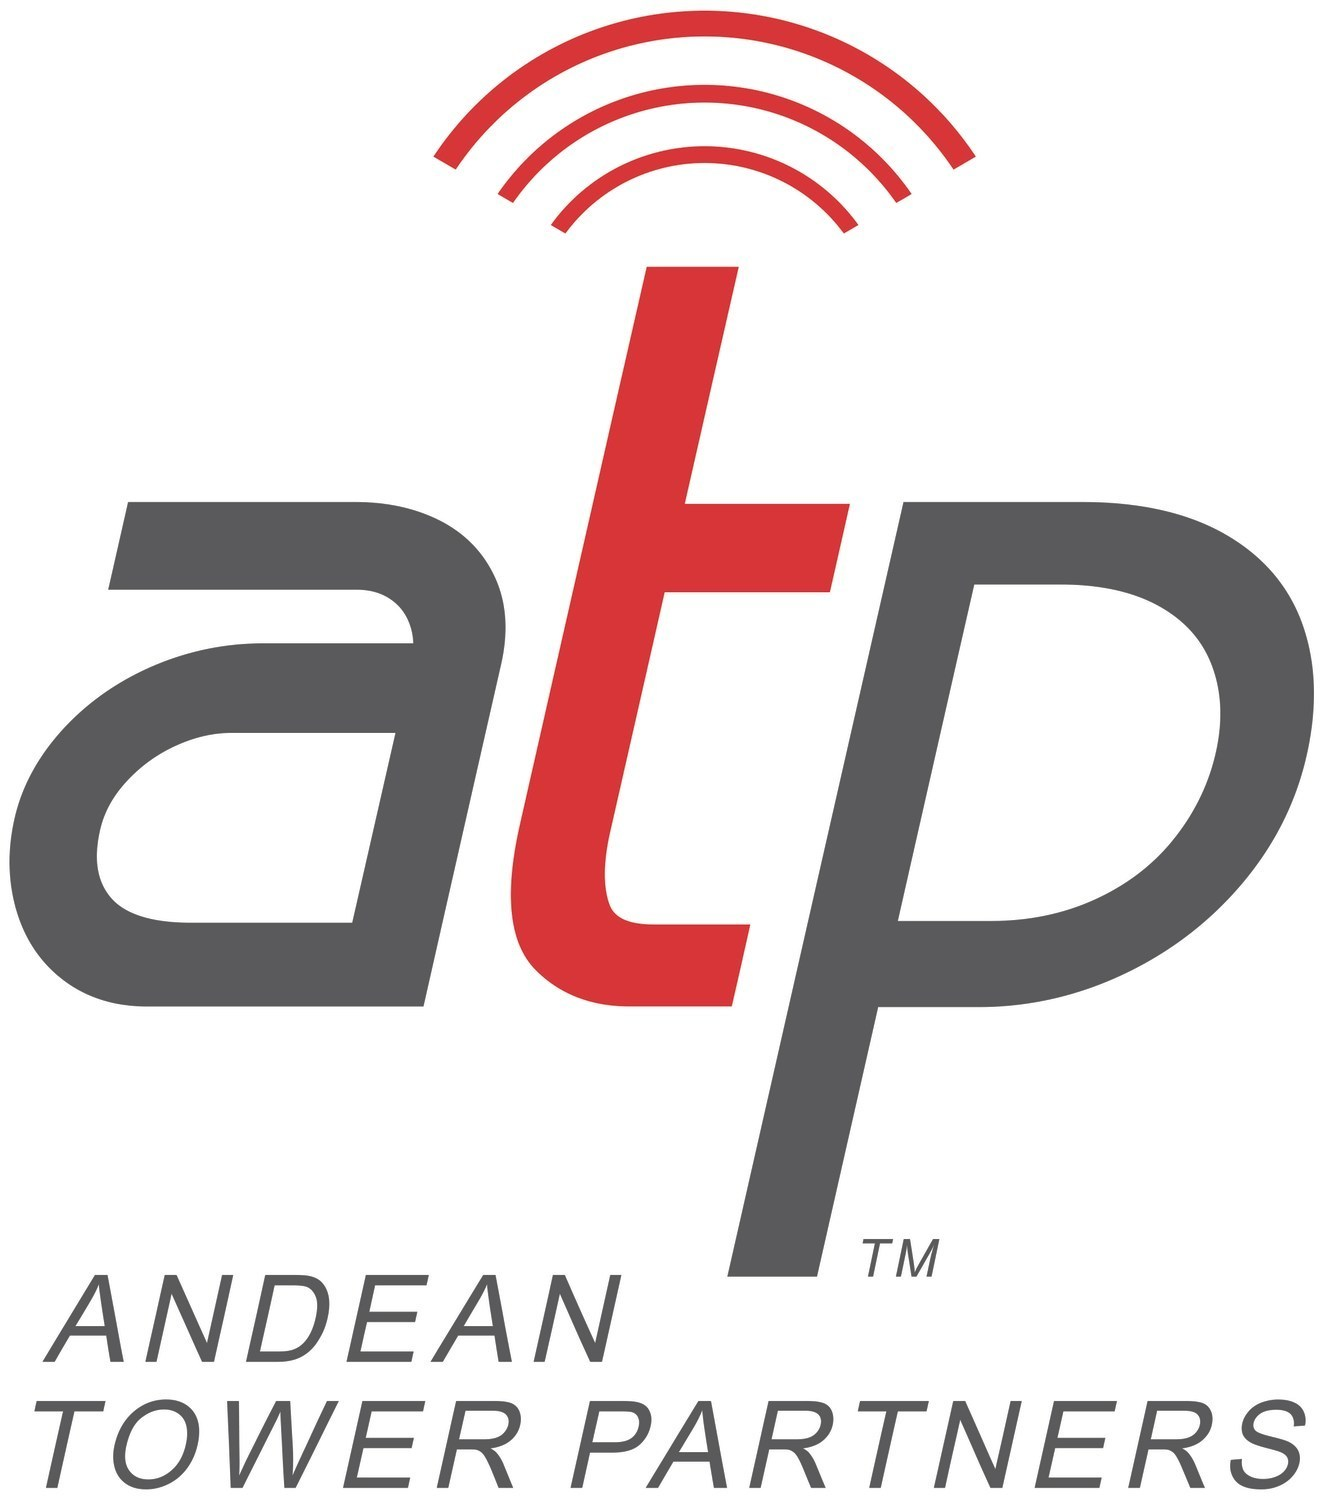 Andean Tower Partners - ATP (PRNewsfoto/Andean Tower Partners)